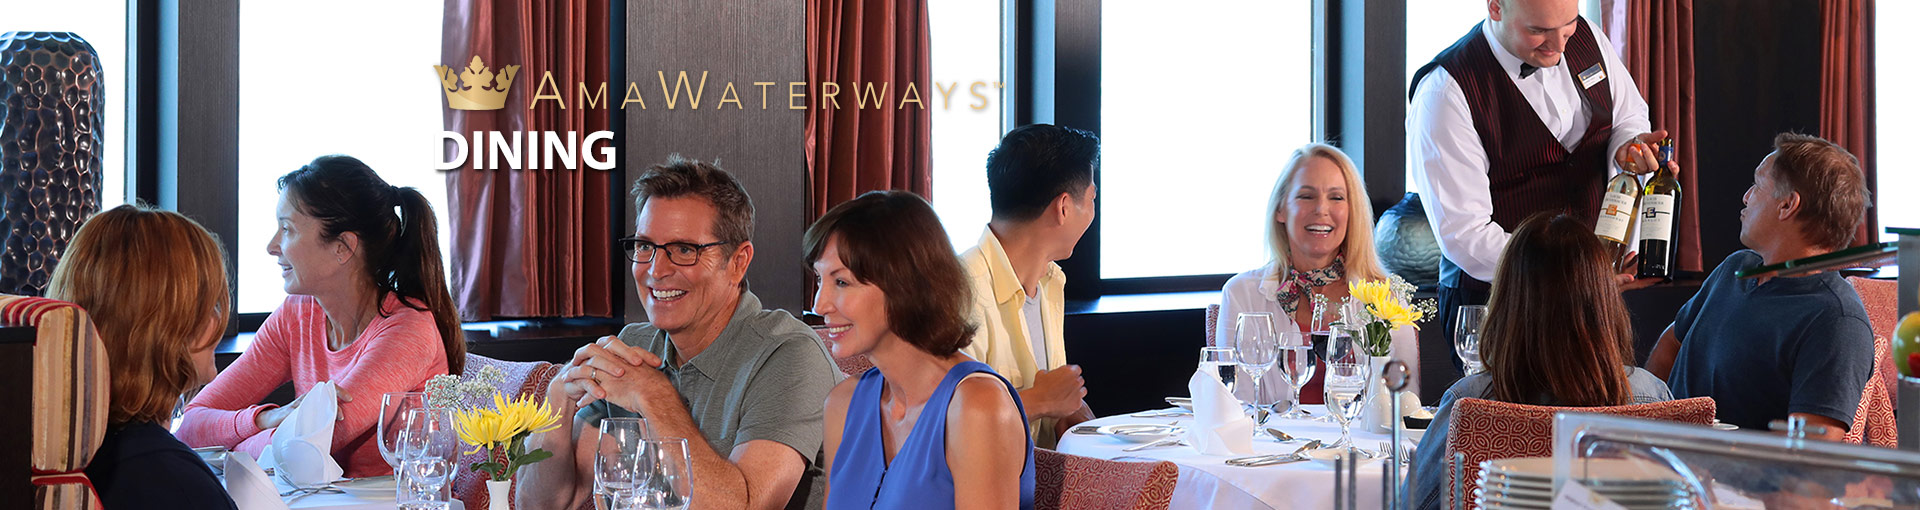 AmaWaterways Dining